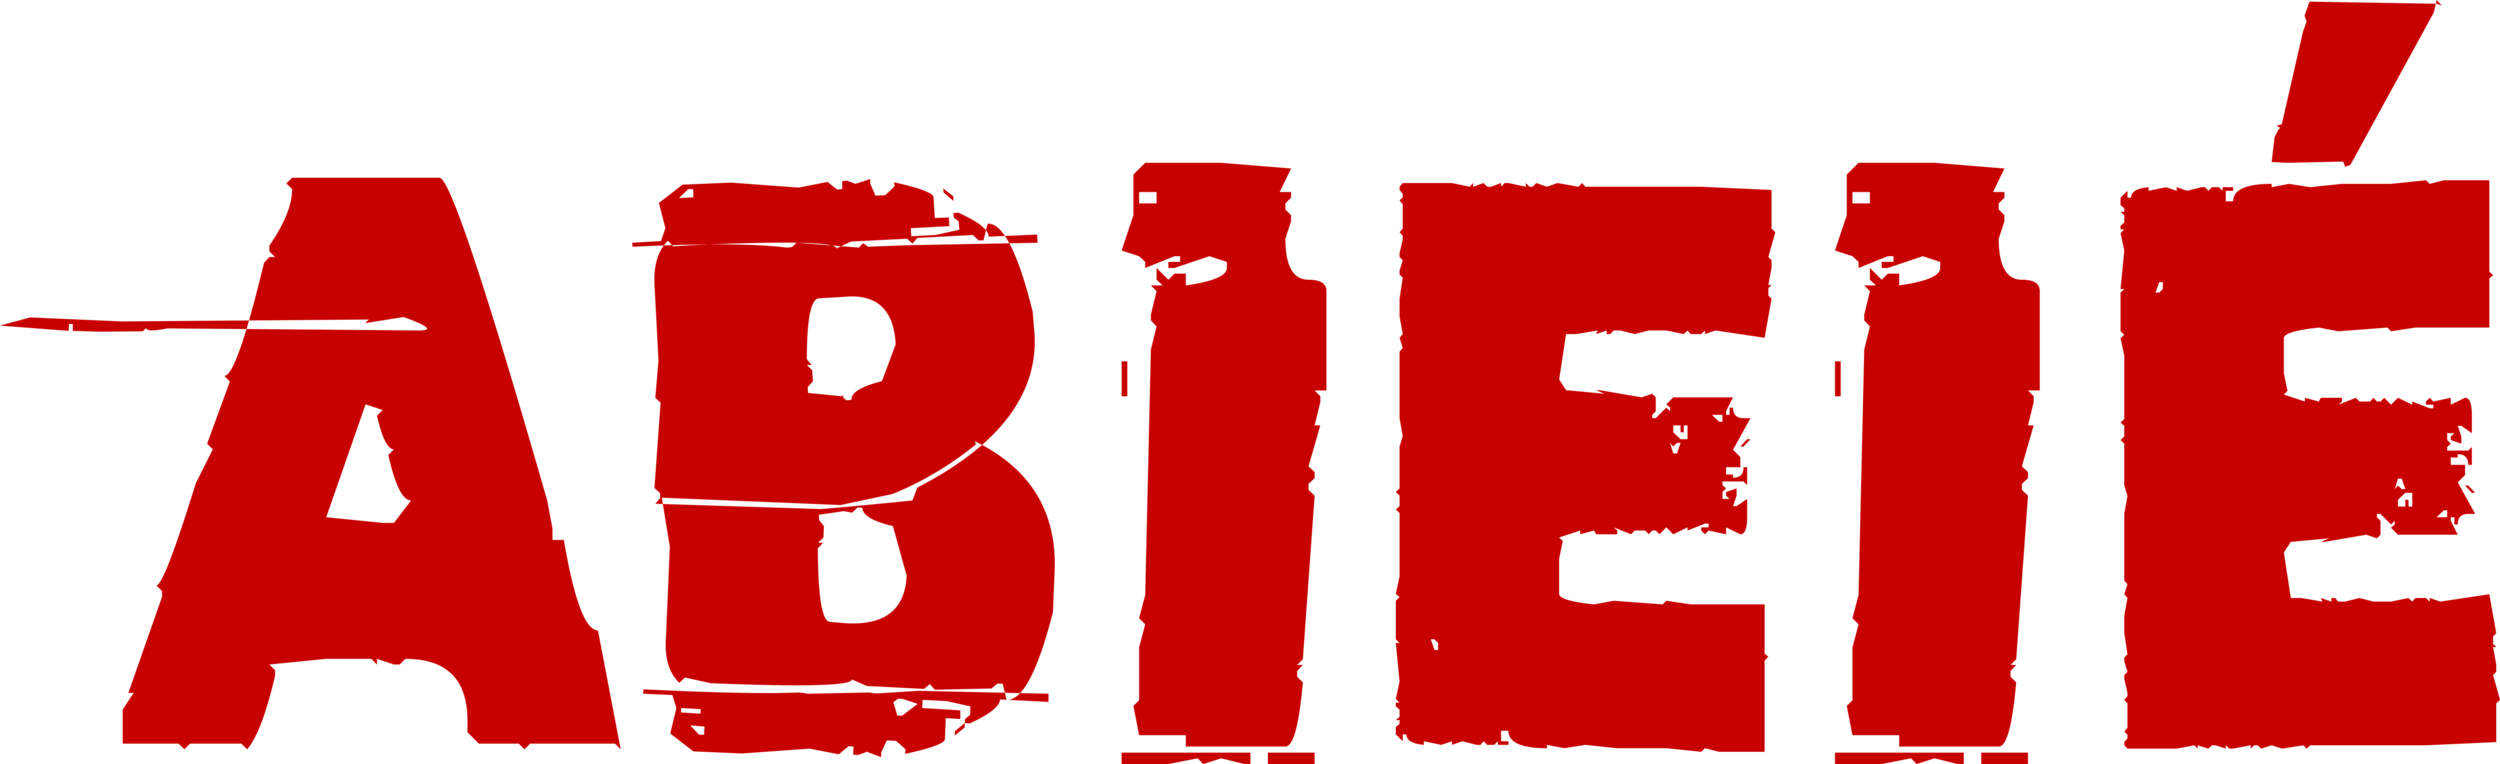 Logo Abieie Red.png